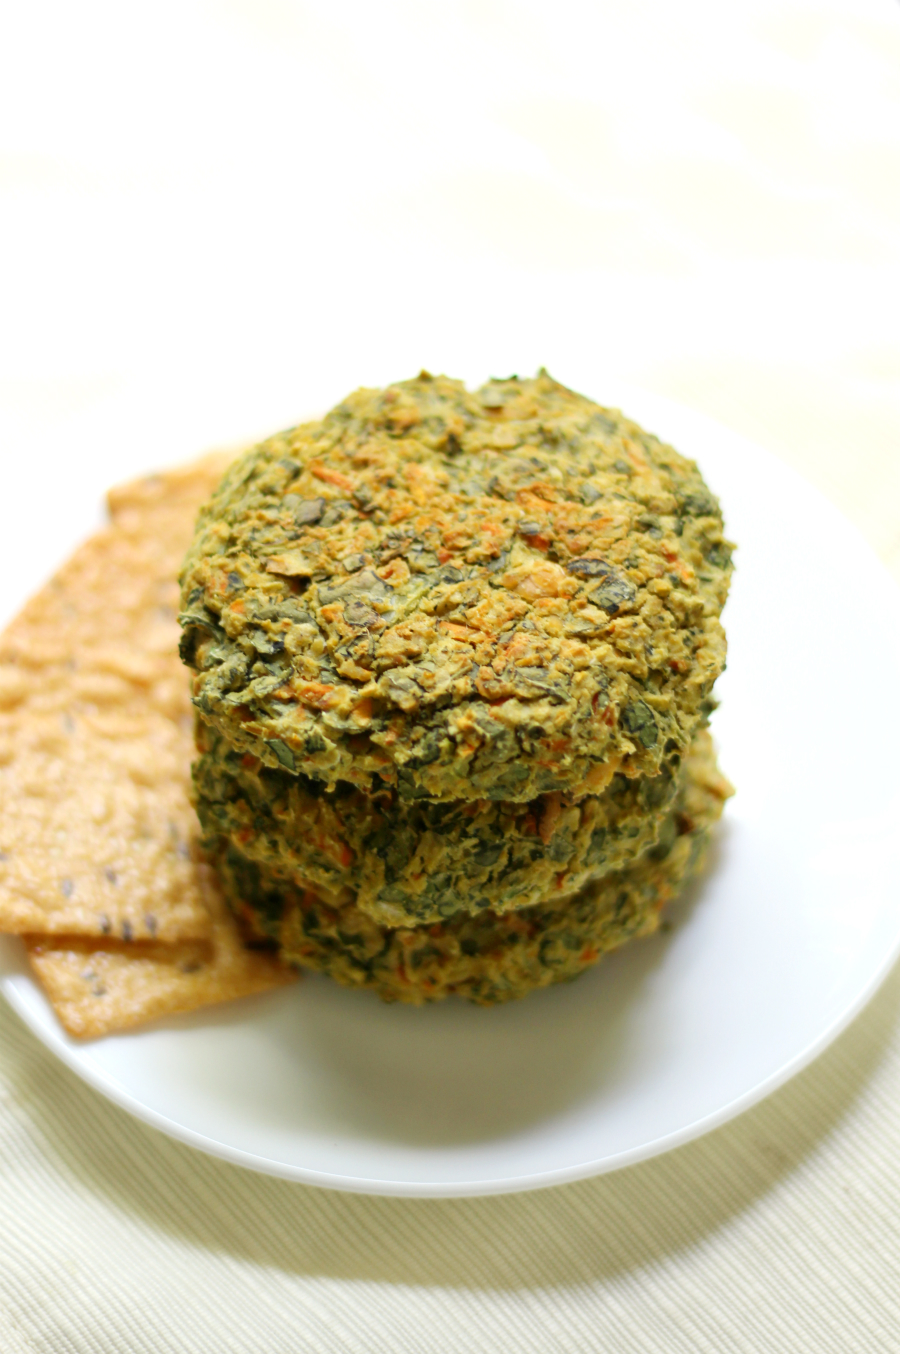 The Incredible Veggie Burger | Strength and Sunshine @RebeccaGF666 The heartiest & most incredible veggie burger! Without the meat, nuts, or grains, this chickpea based burger recipe, with kale and carrots, will get all meat-eaters on the plant-based train! Make these burgers for your next gluten-free & vegan family dinner!